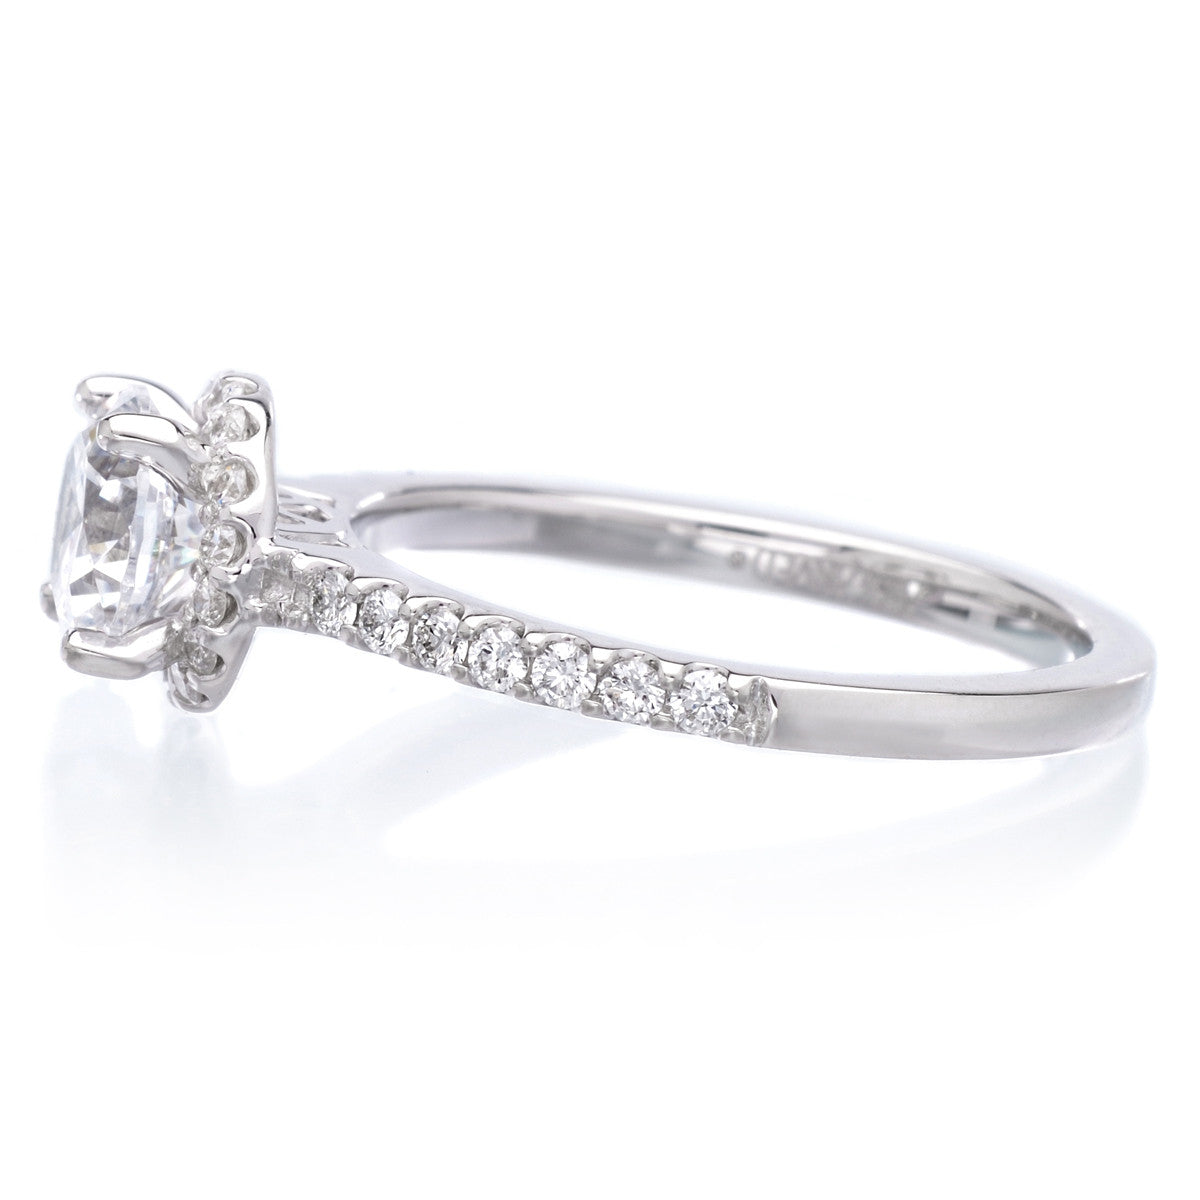 18K White Gold Layla Engagement Ring Setting